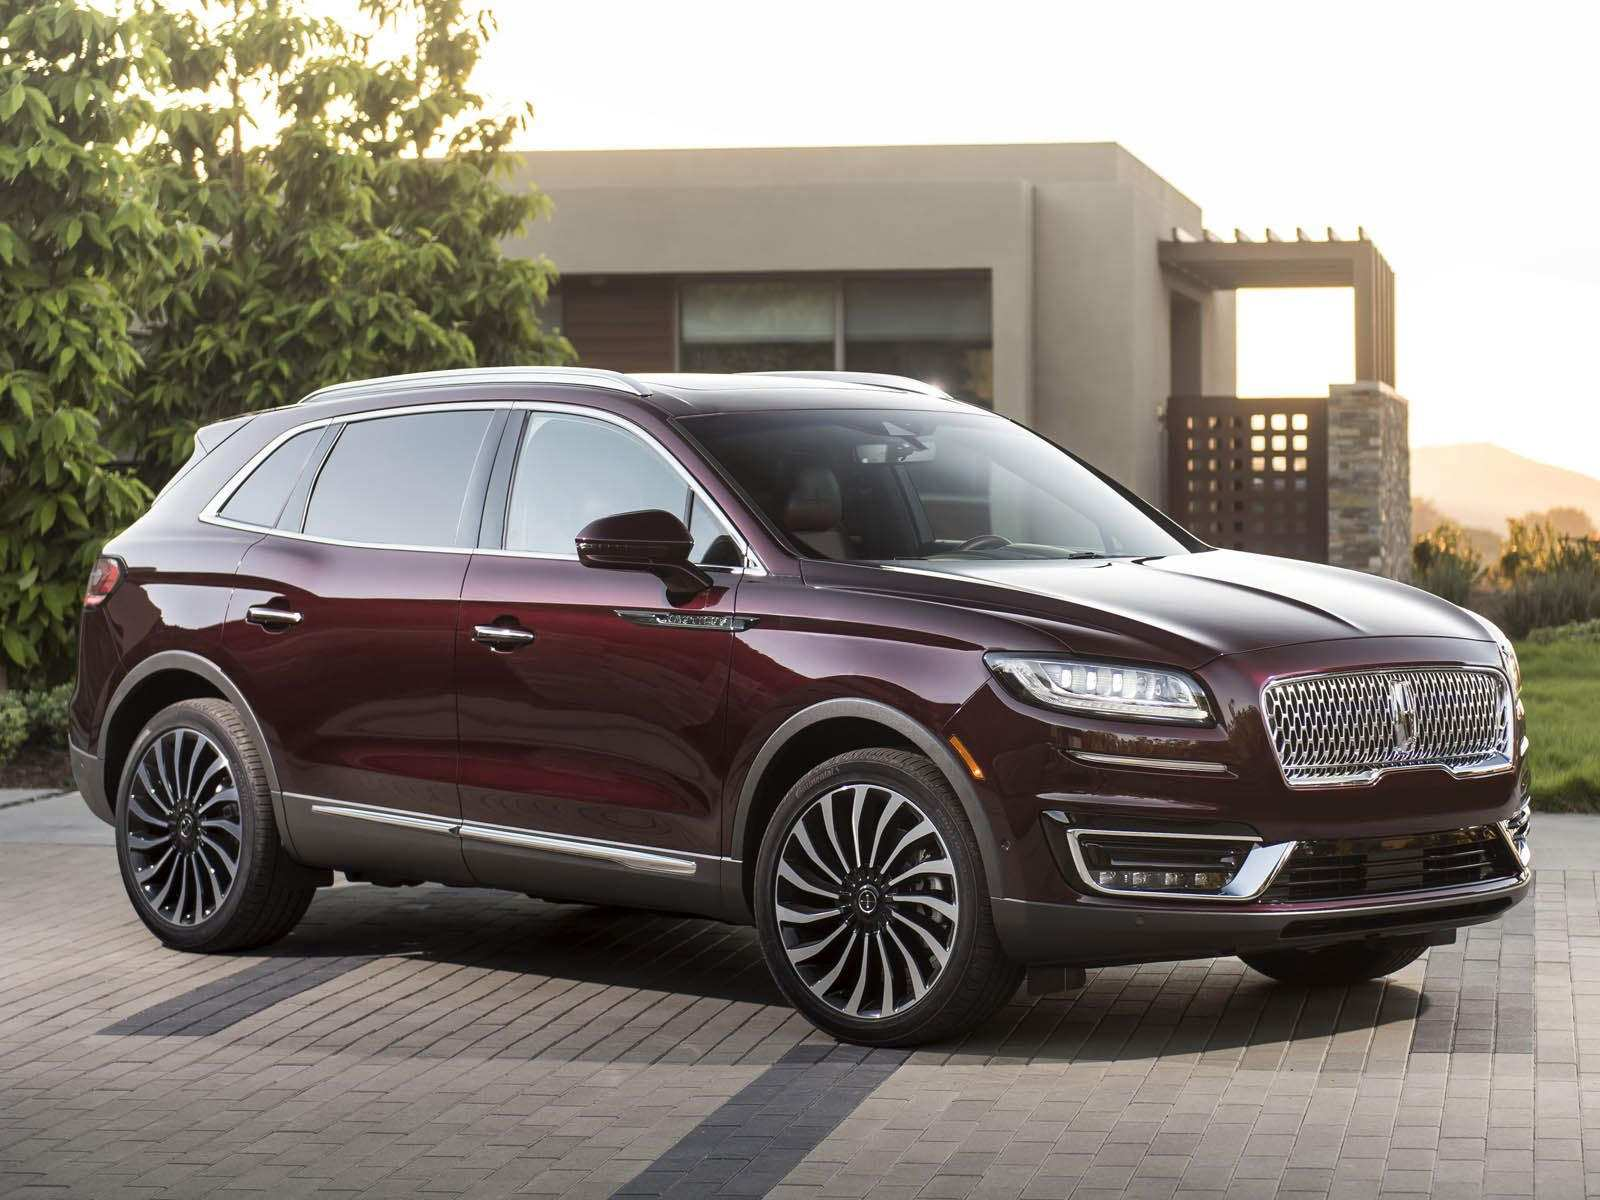 80 All New Best Ford Nautilus 2019 Rumors Redesign And Review